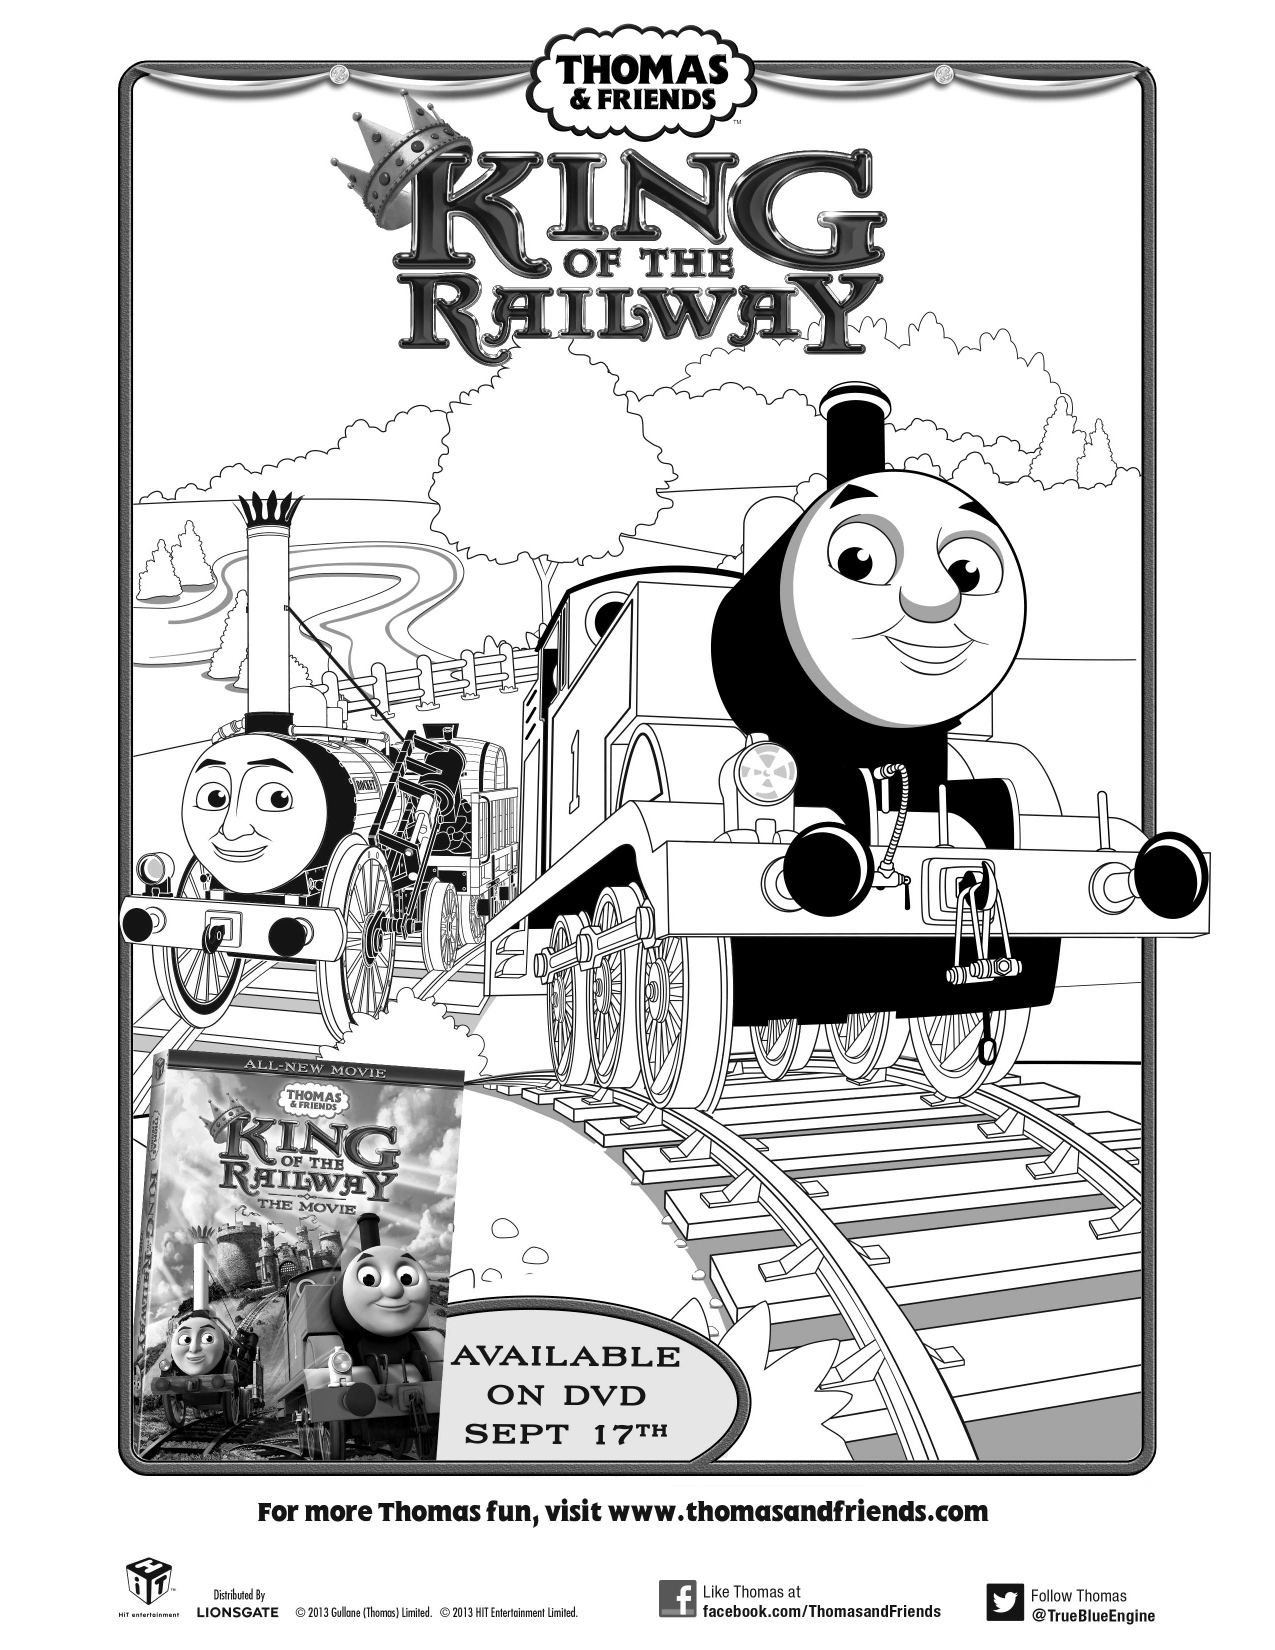 Thomas & Friends: King of the Railway the Movie Printable